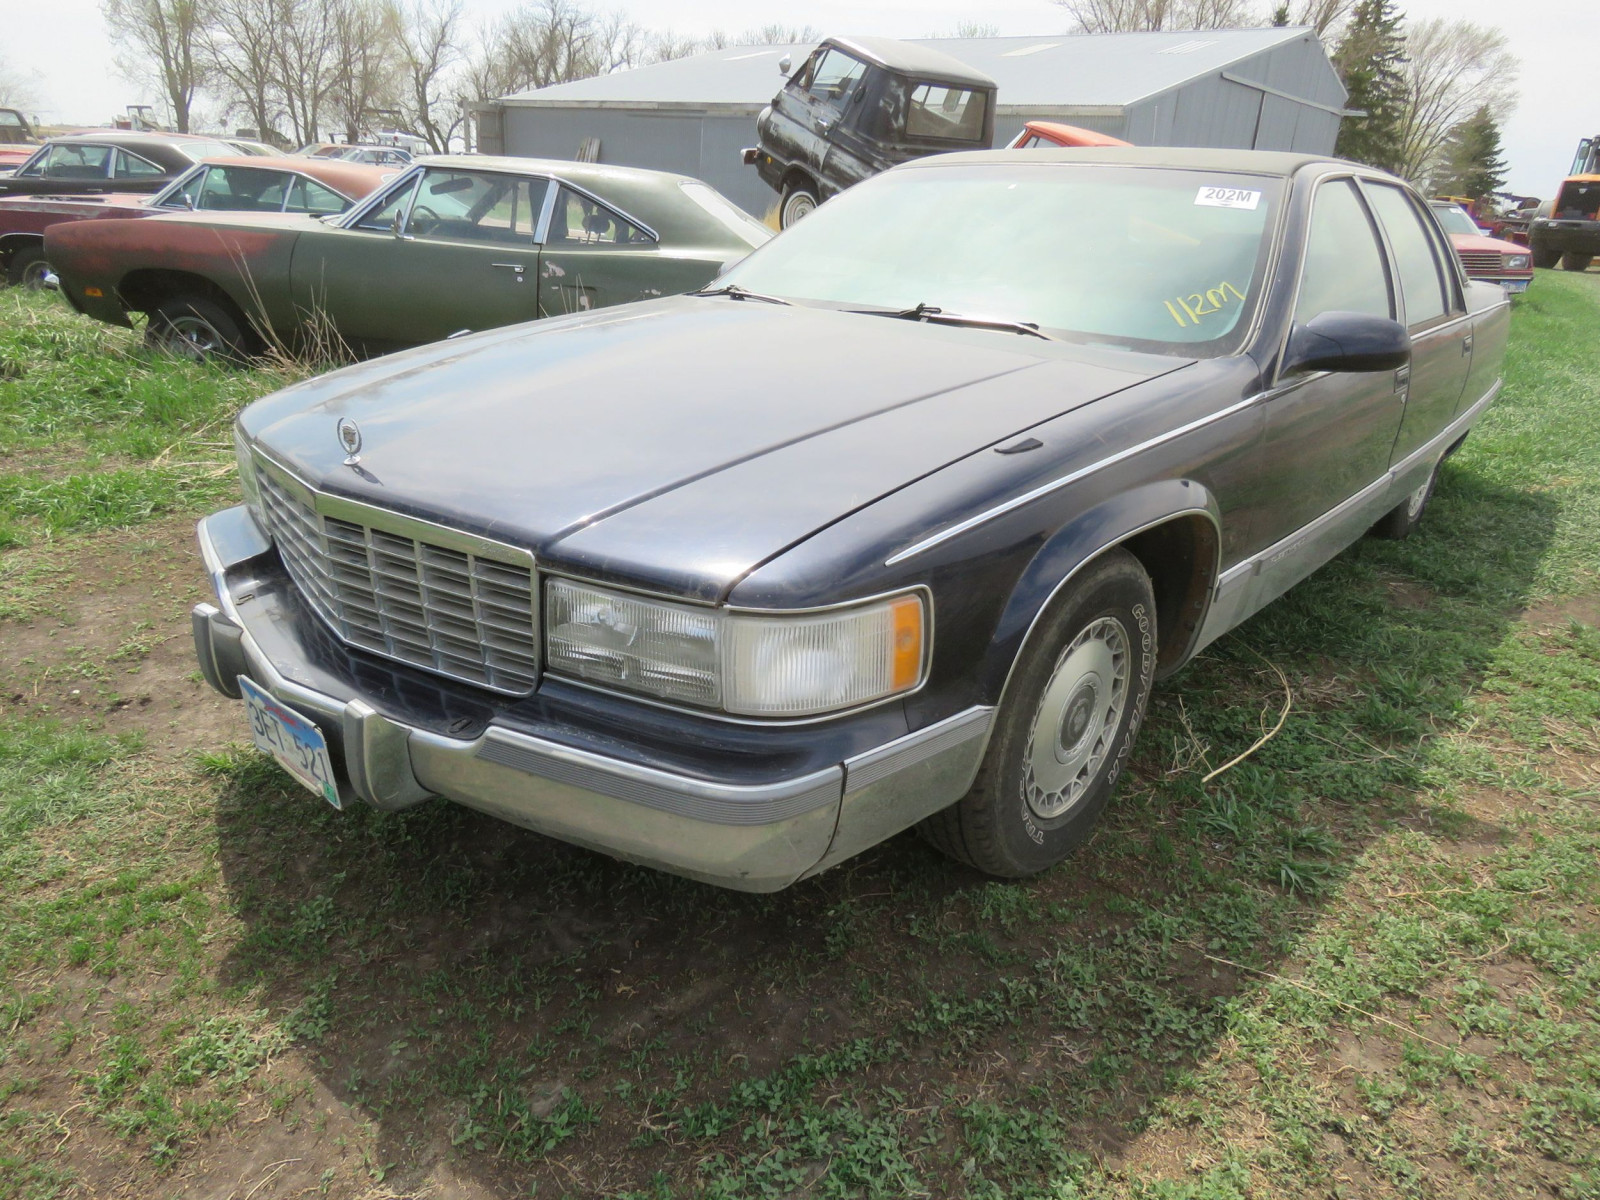 1996 Cadillac Fleetwood Brougham - Image 1